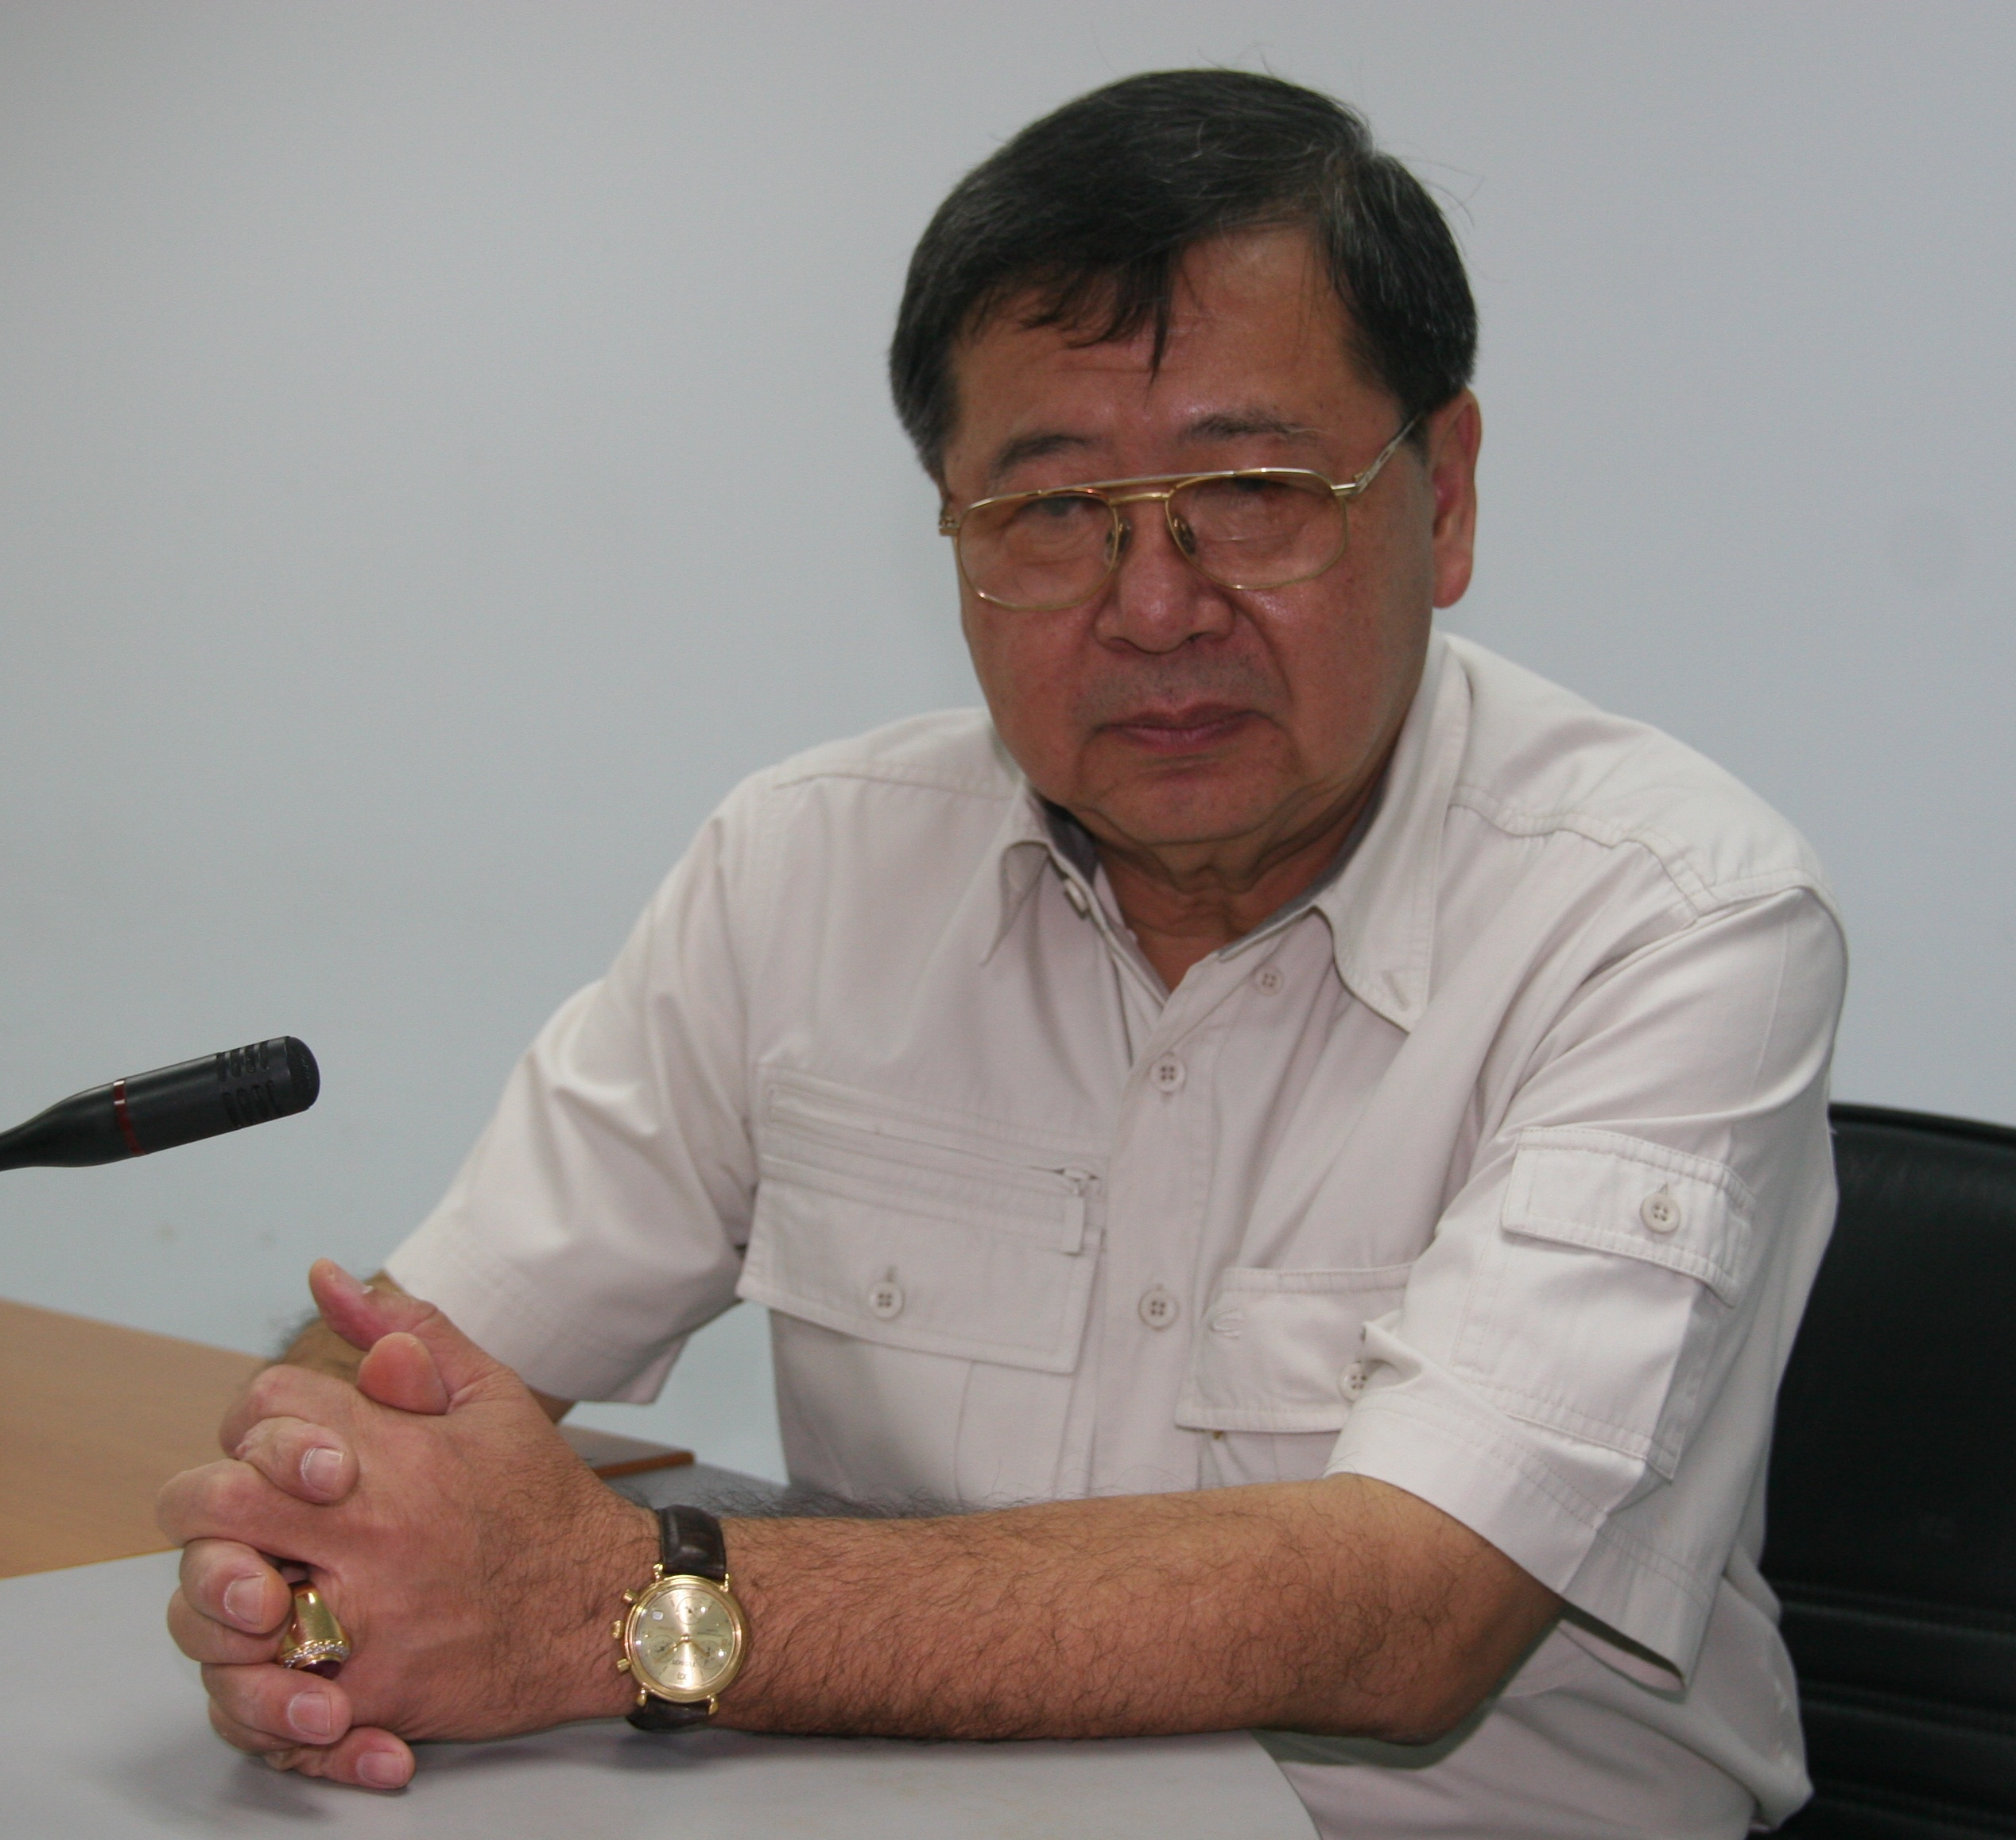 Vasant Panich, Commissioner on the National Human Rights Commission of Thailand (NHRCT). The NHRCT is considering its position concerning the recent arrests of Chinese refugee Falun Gong practitioners by Thai authorities, for peacefully protesting in front of the Chinese Embassy in Bangkok. (The Epoch Times)